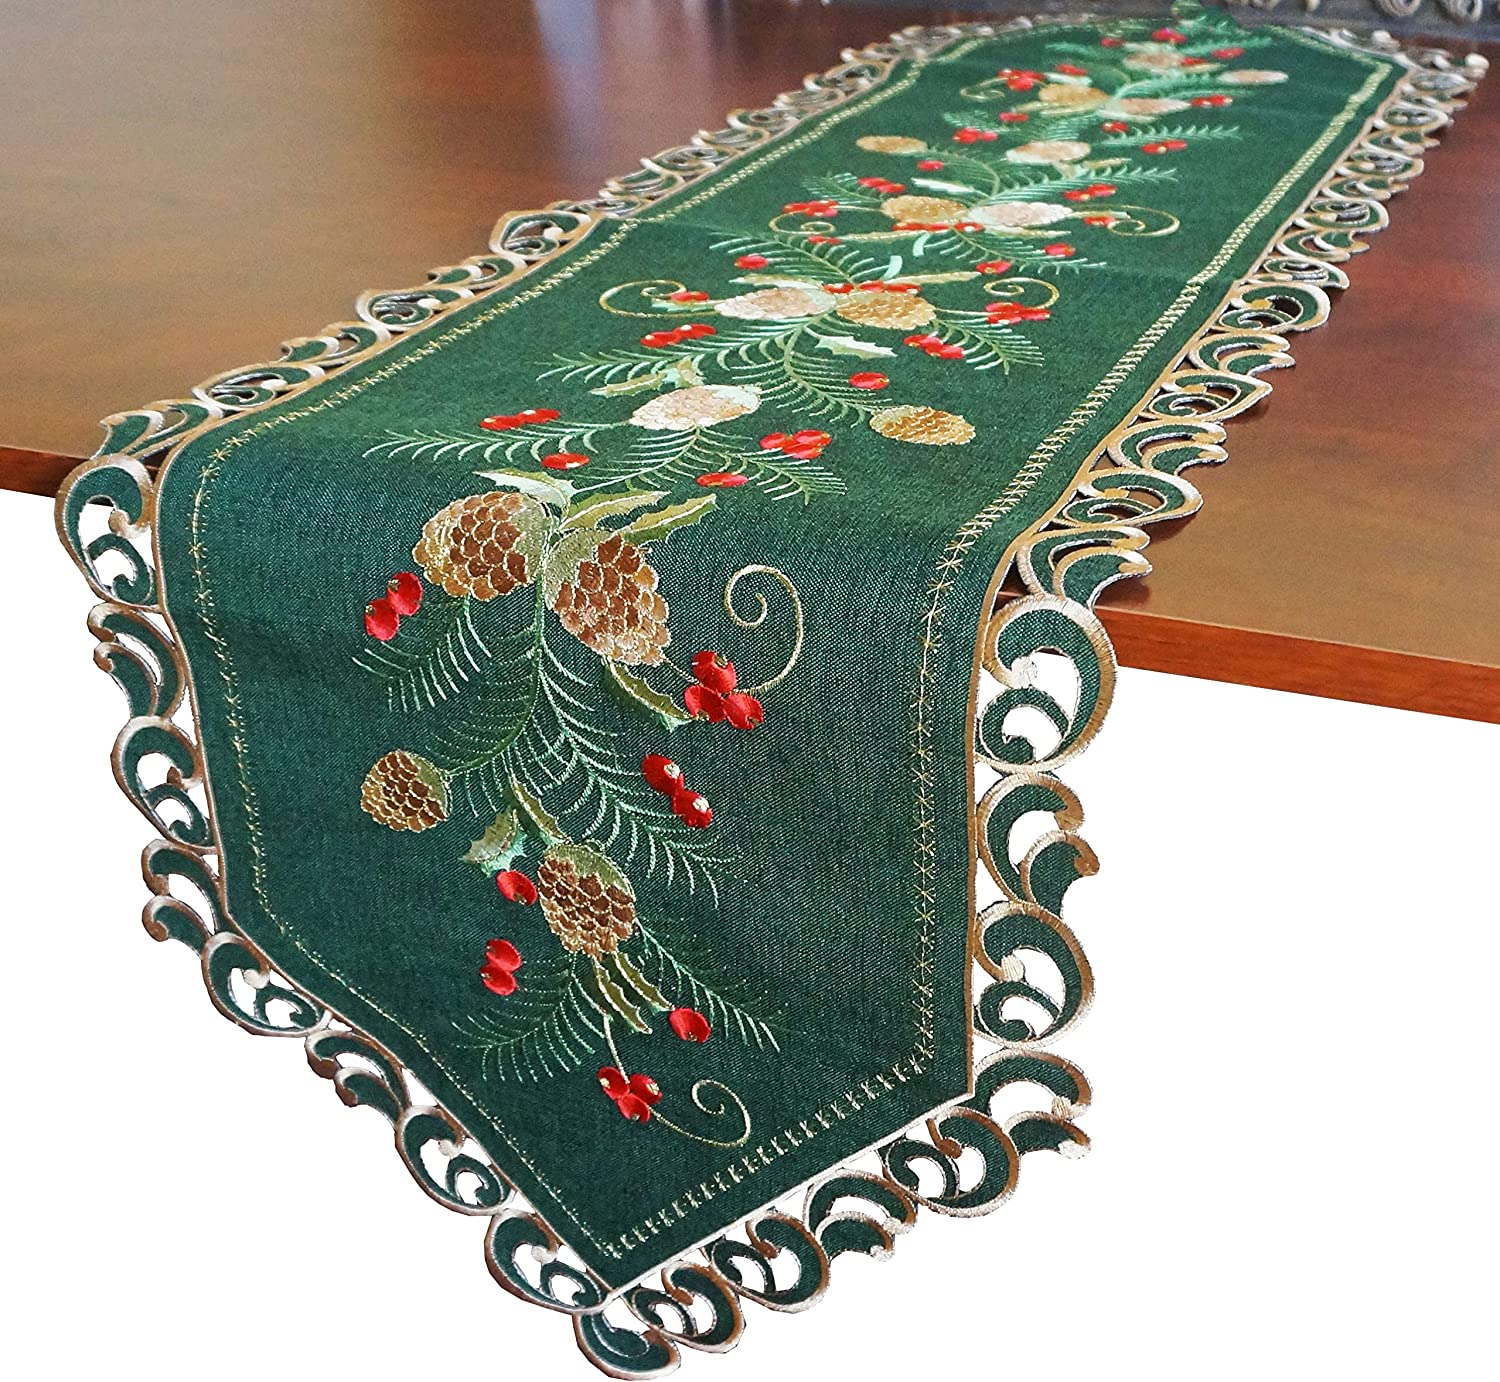 """GRANDDECO Holiday Christmas Table Runner 13""""x54"""", Cutwork Embroidered Floral Pine Cone and Holly Berry Dresser Scarf Table Topper for Home Dining Xmas Tabletop Decoration (Runner 13""""x54"""", Dark Green)"""